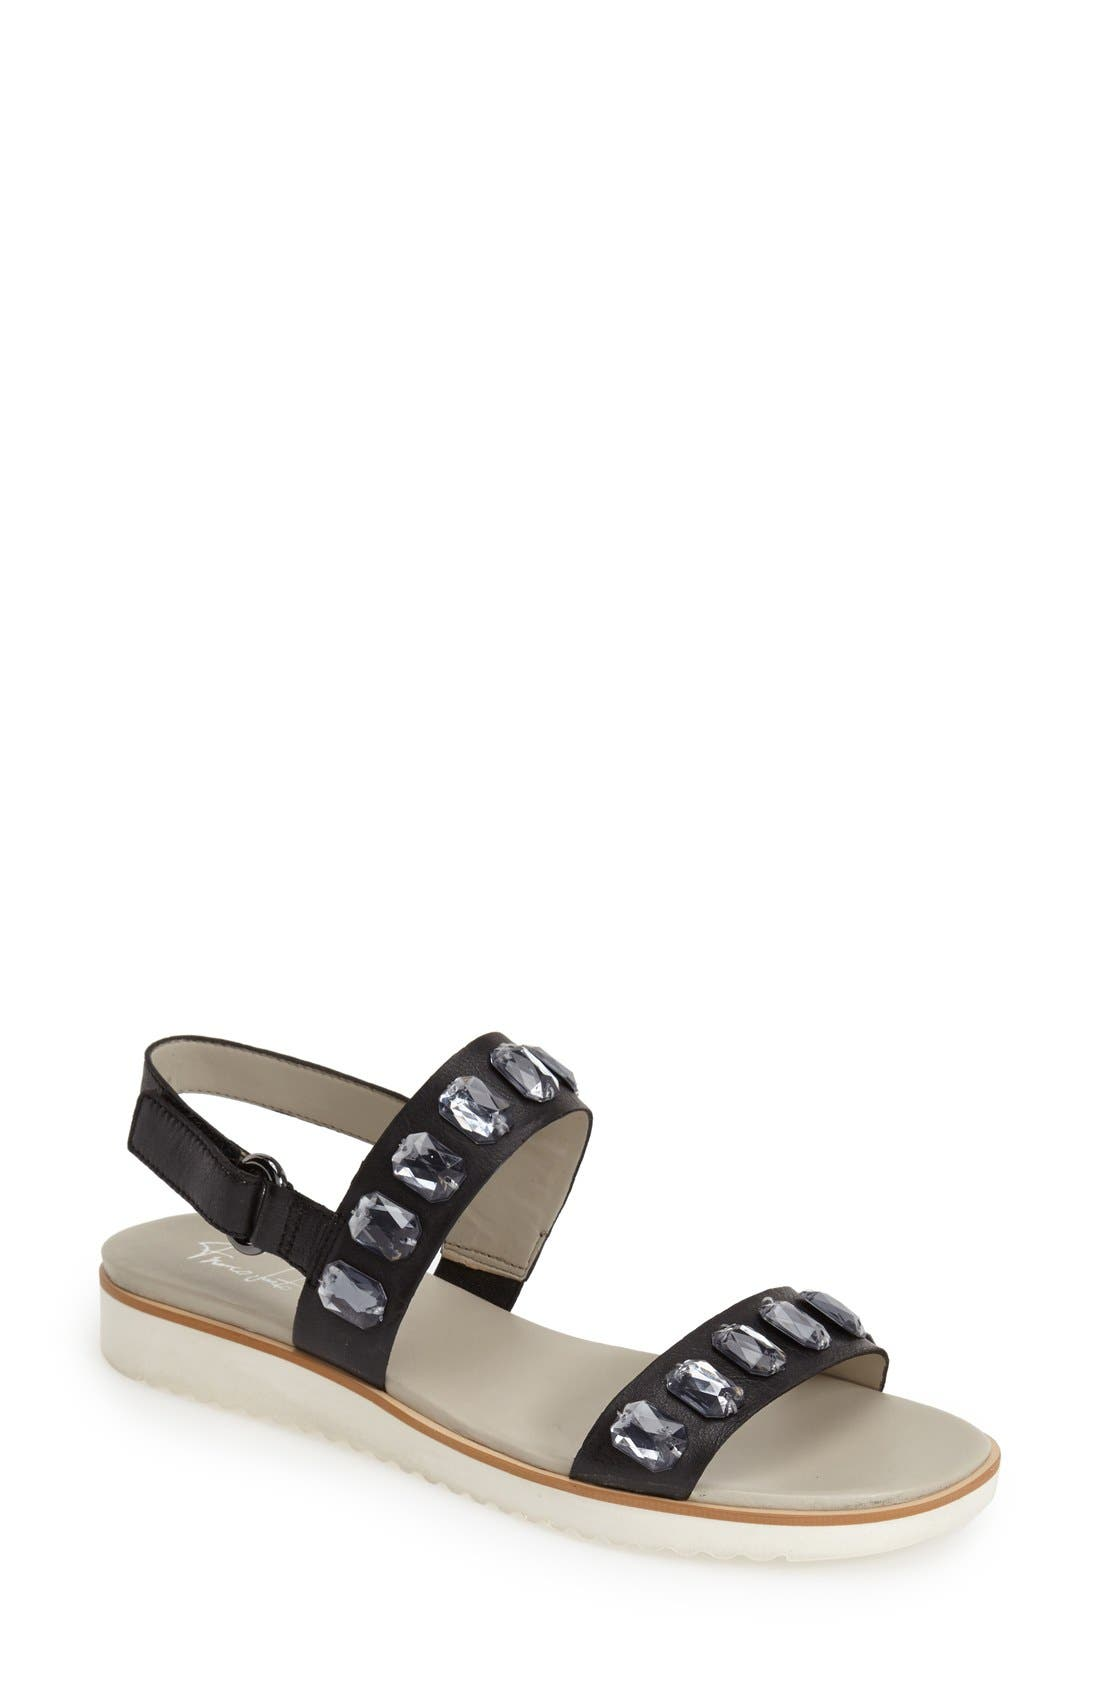 'Diamante' Double Band Slingback Sandal,                         Main,                         color, Black